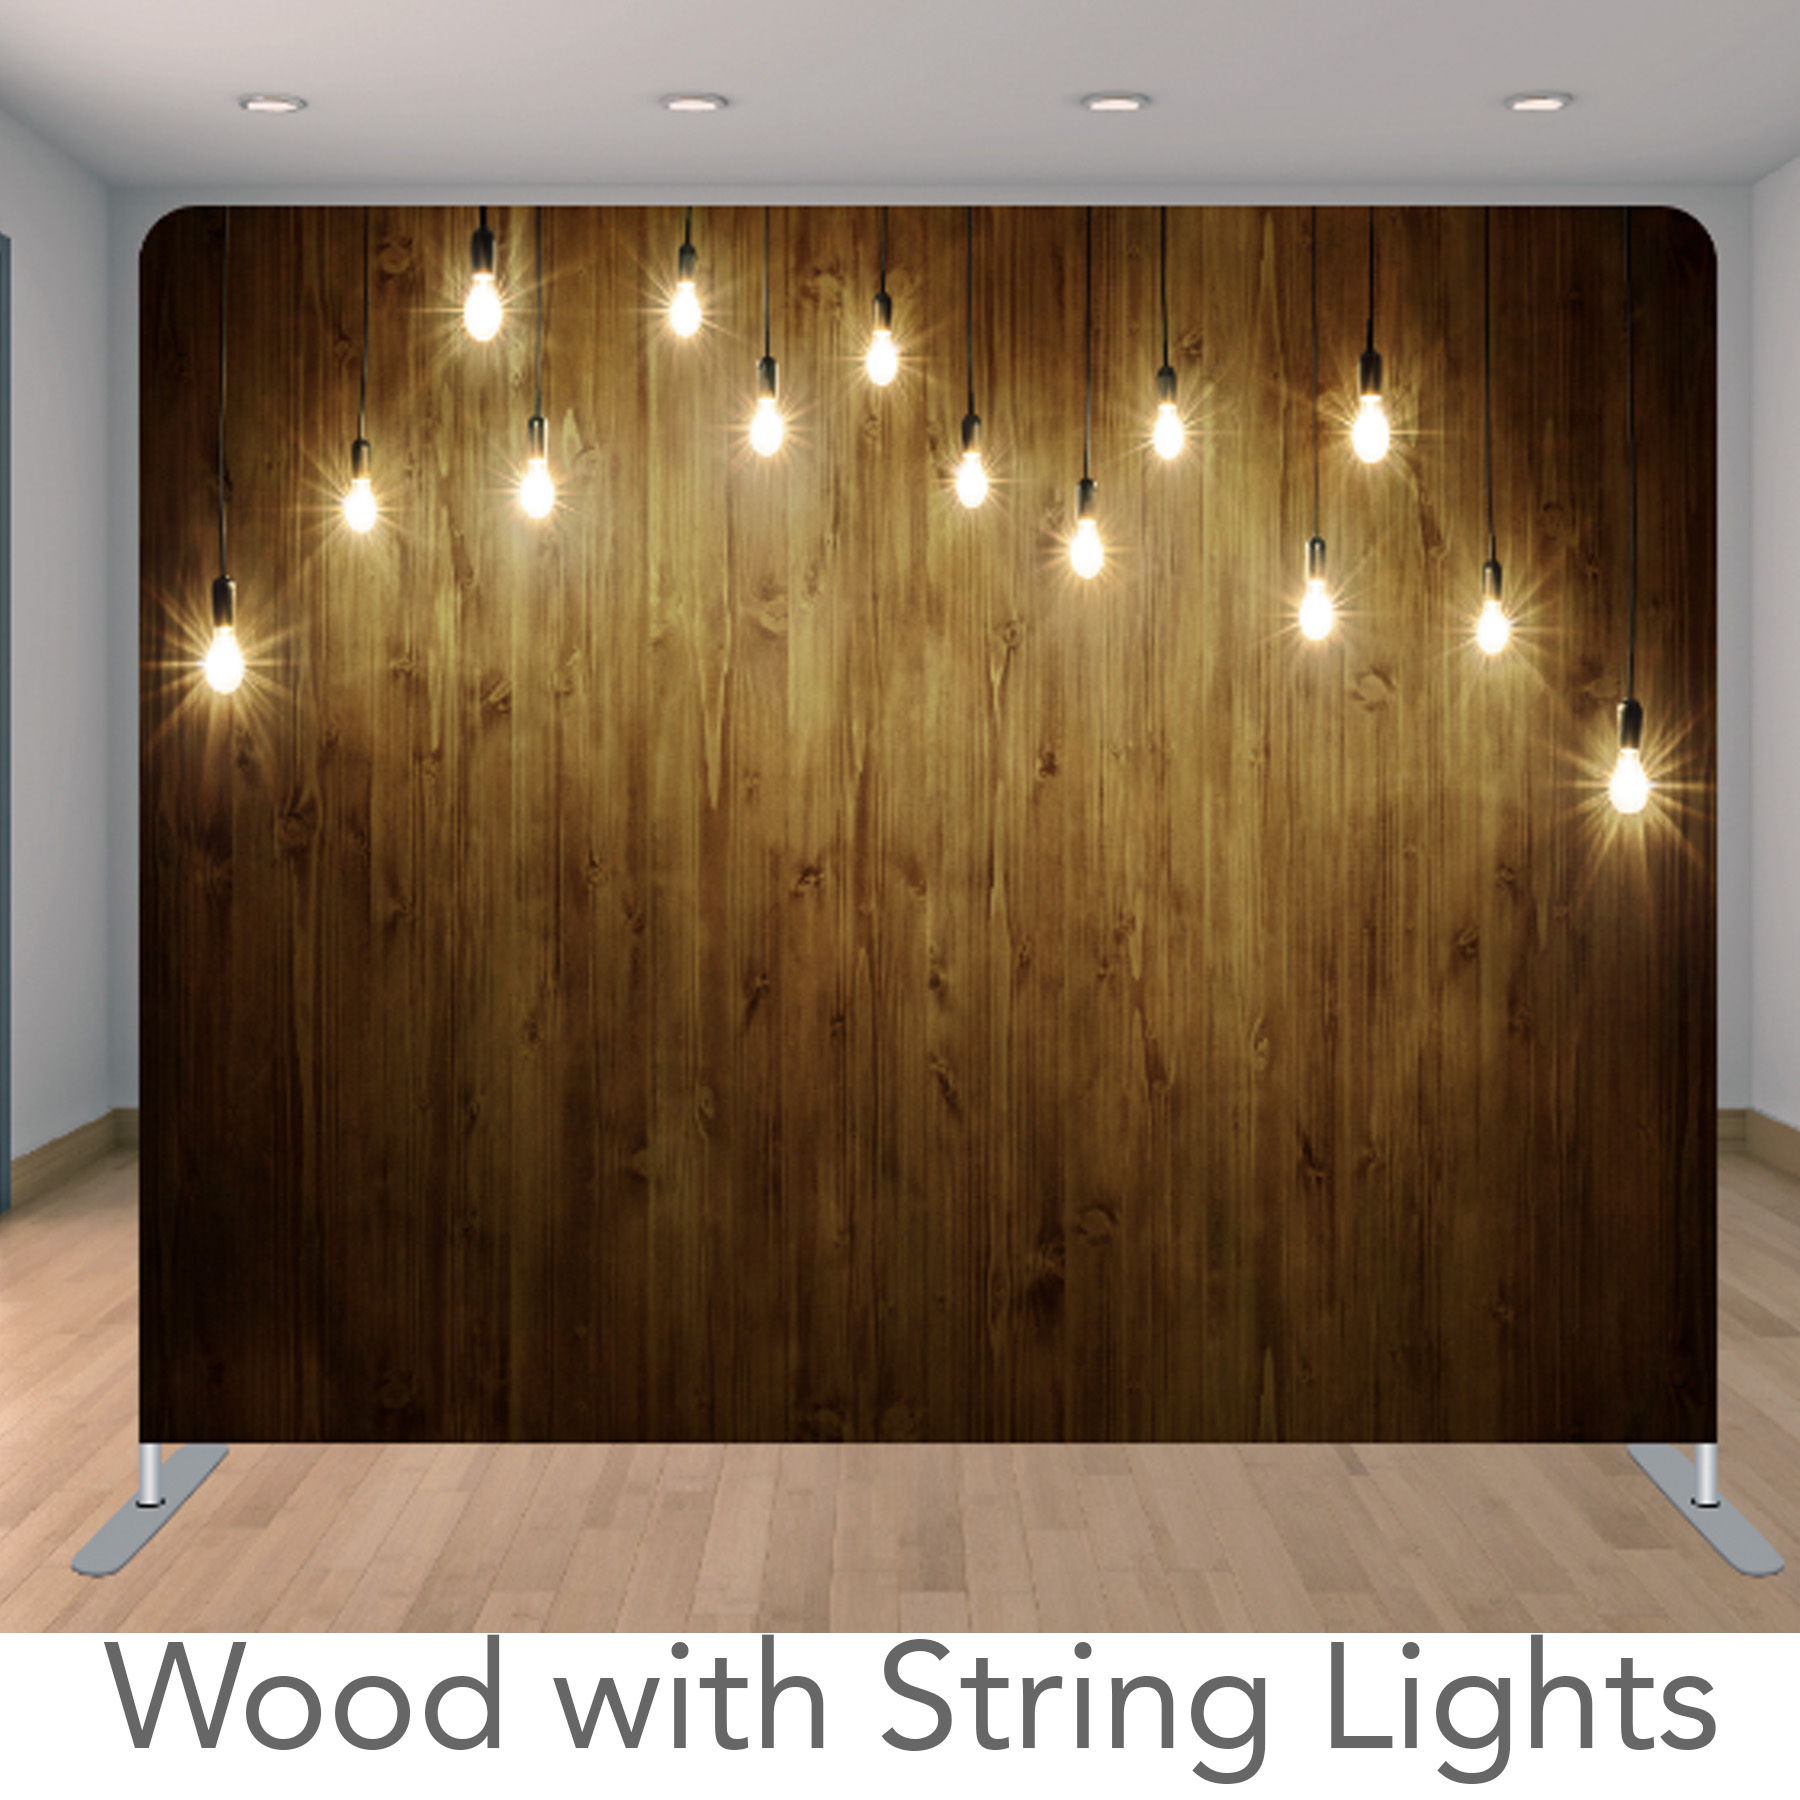 Woodwithstringlights.jpg